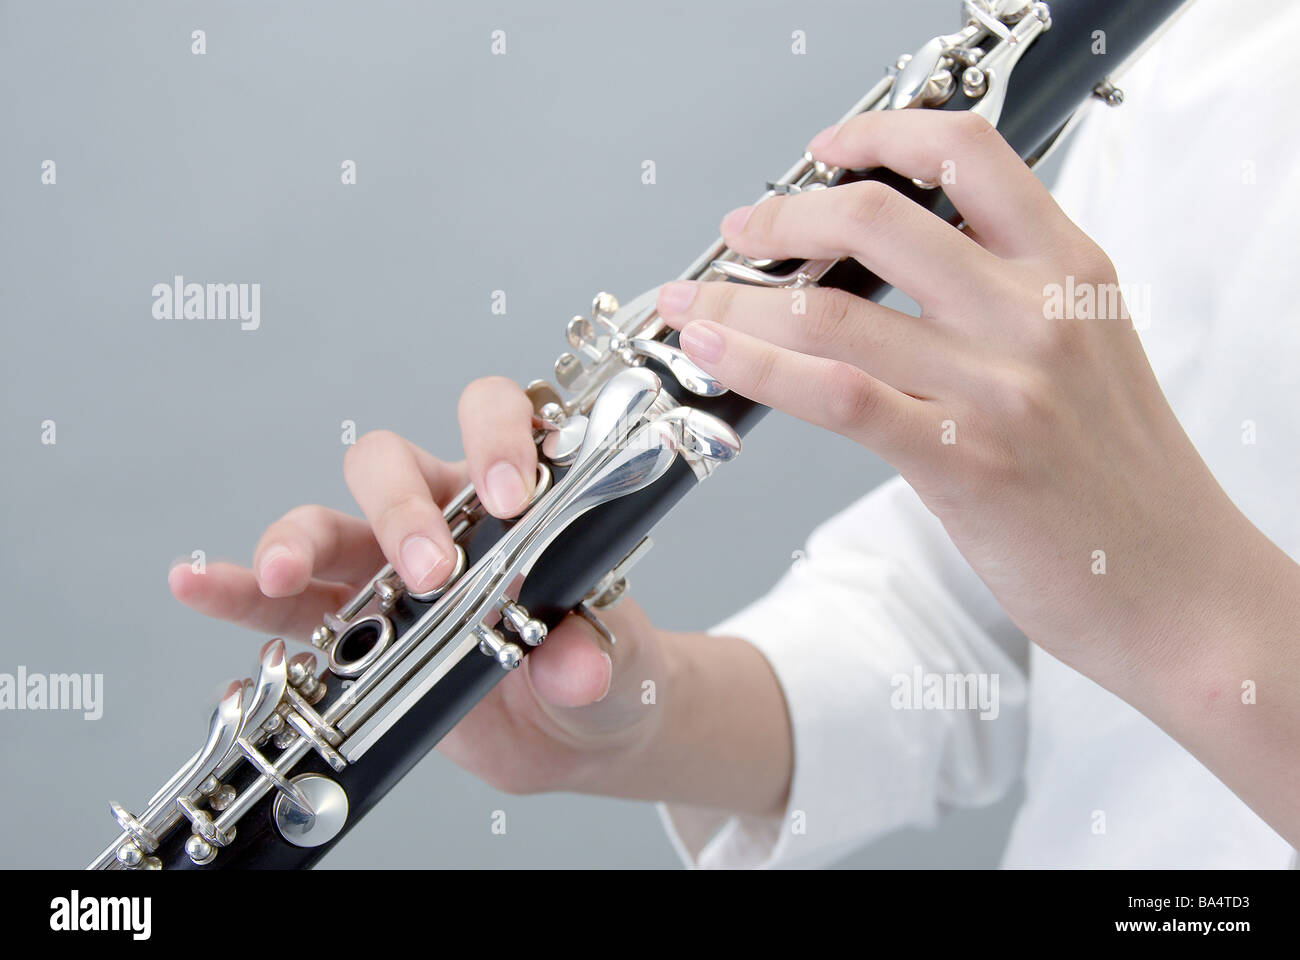 how to hold a clarinet in your mouth